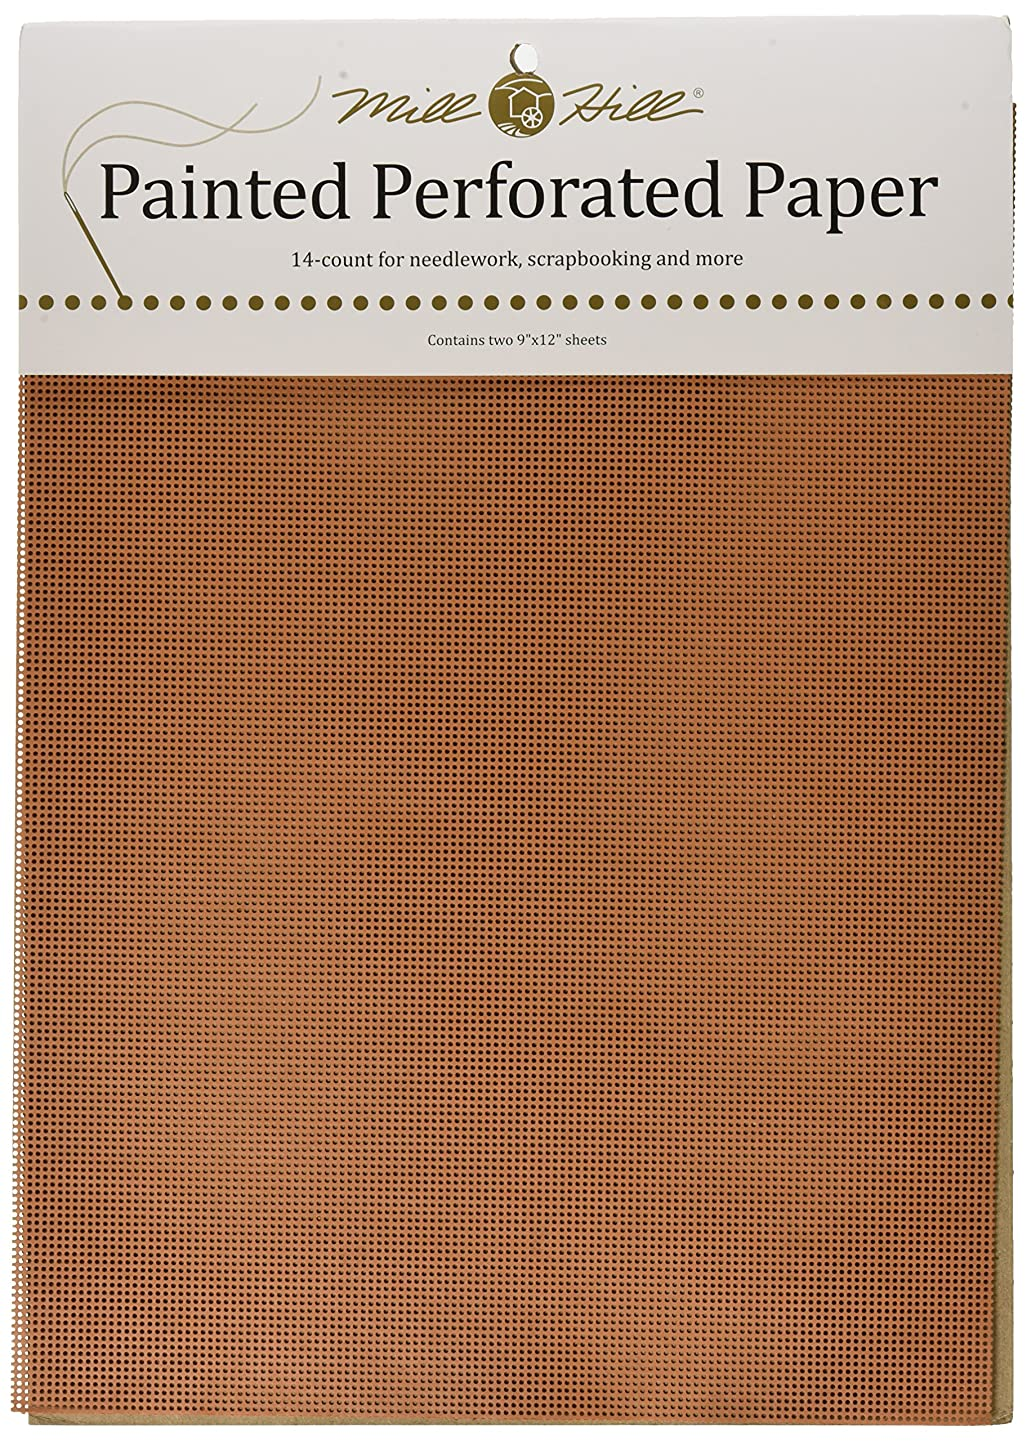 Mill Hill Painted Perforated Paper 14 Count 9